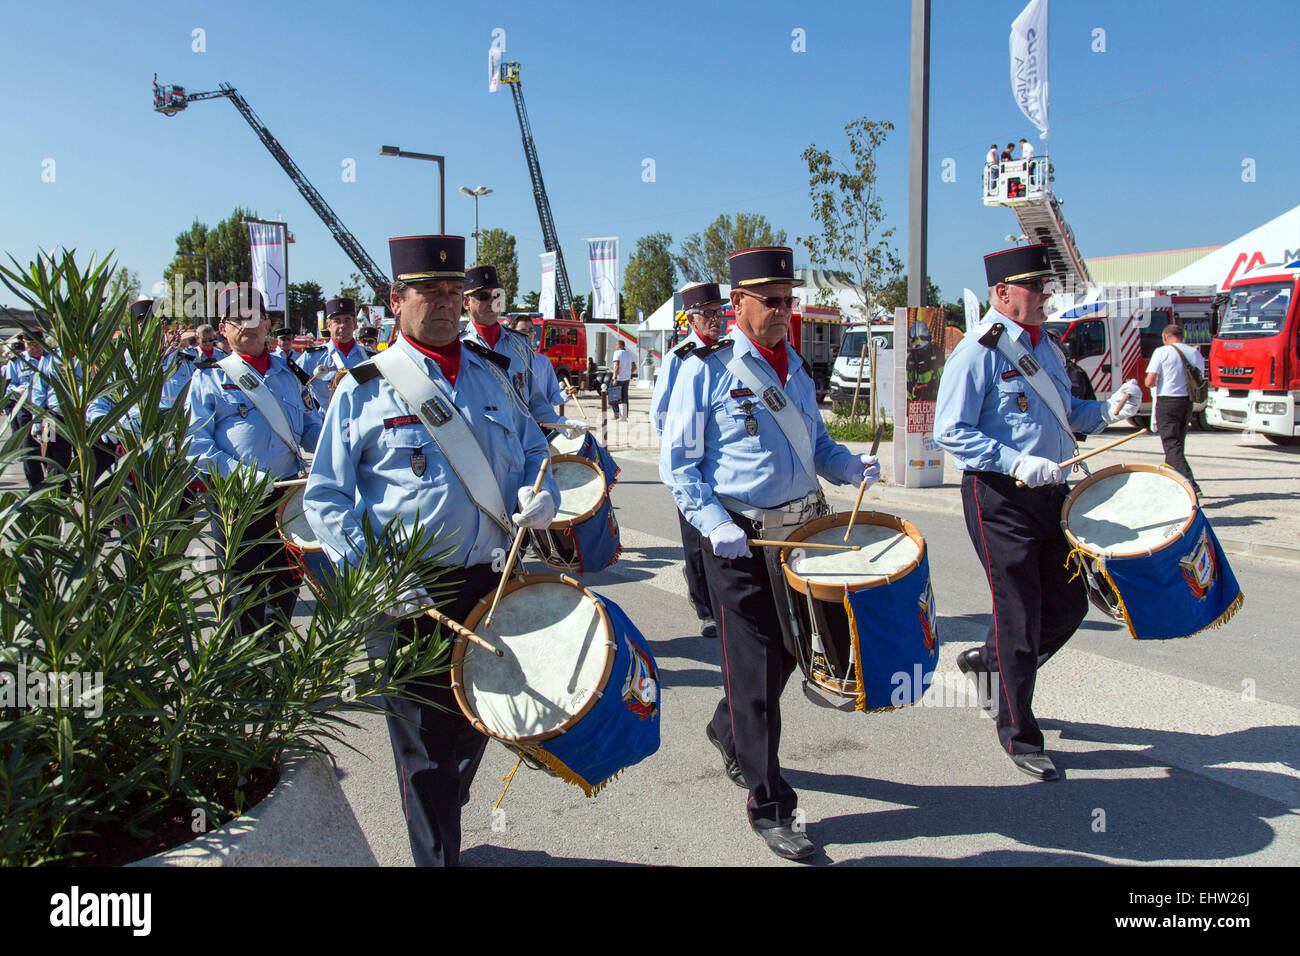 Firefighters Marching At Capitol >> Firefighters Band Stock Photos Firefighters Band Stock Images Alamy